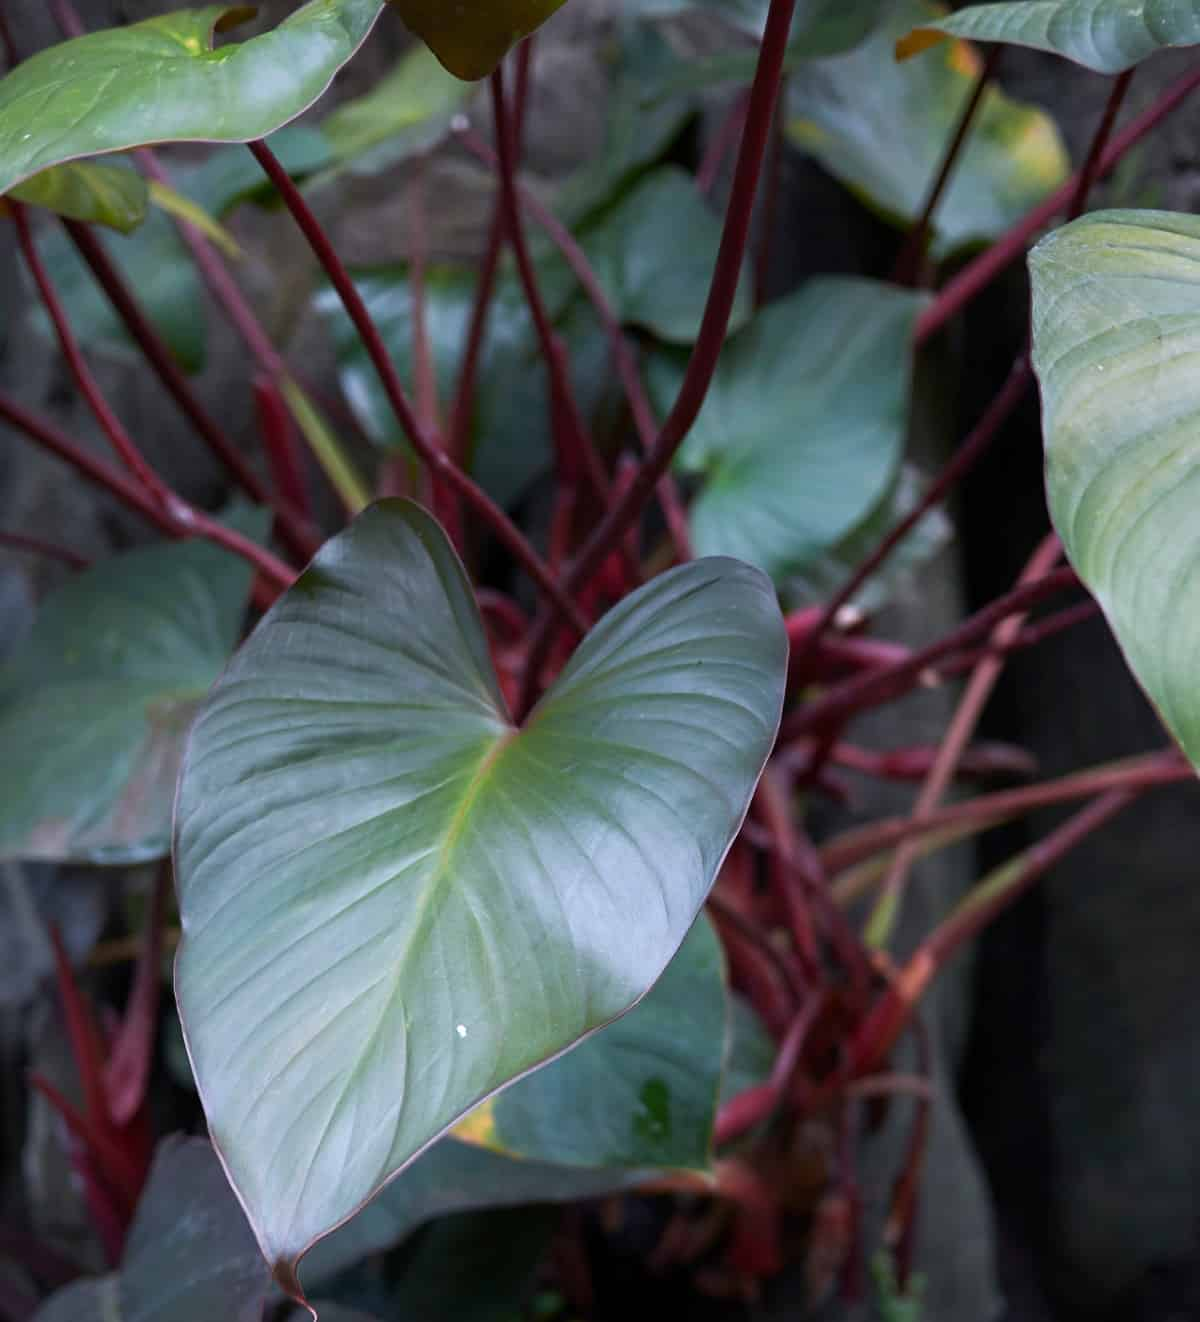 The philodendron is a plant that is highly adaptable to all sorts of living conditions.